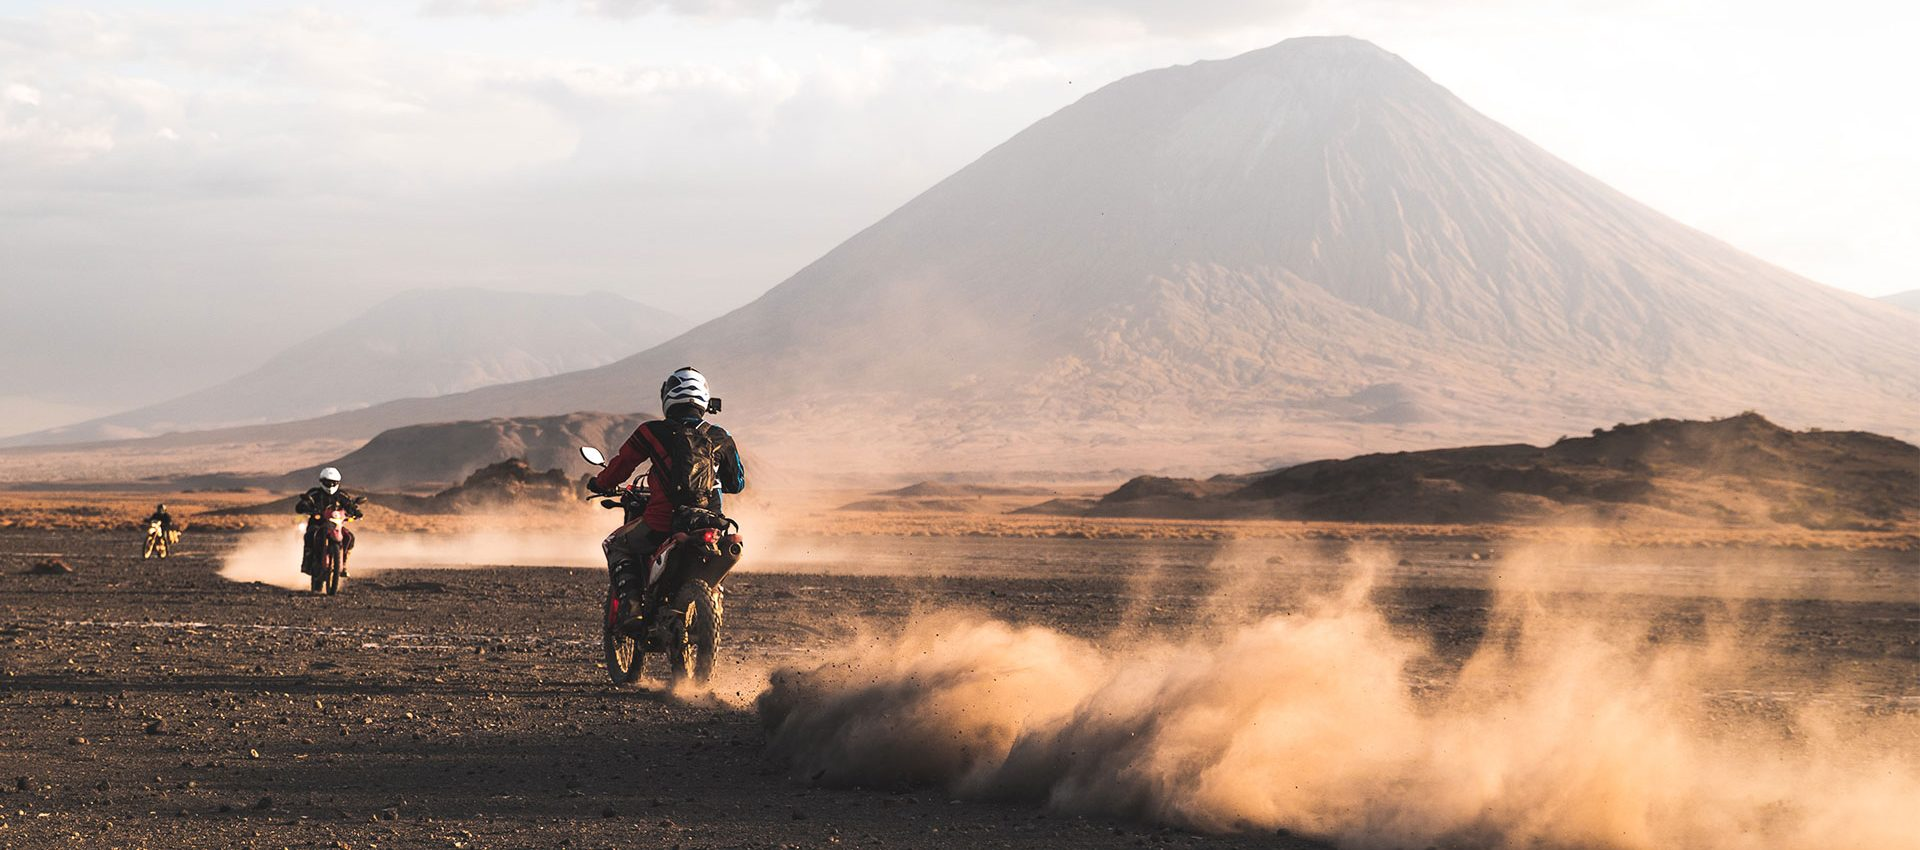 Dusty roads with a view over the Kilimanjaro.